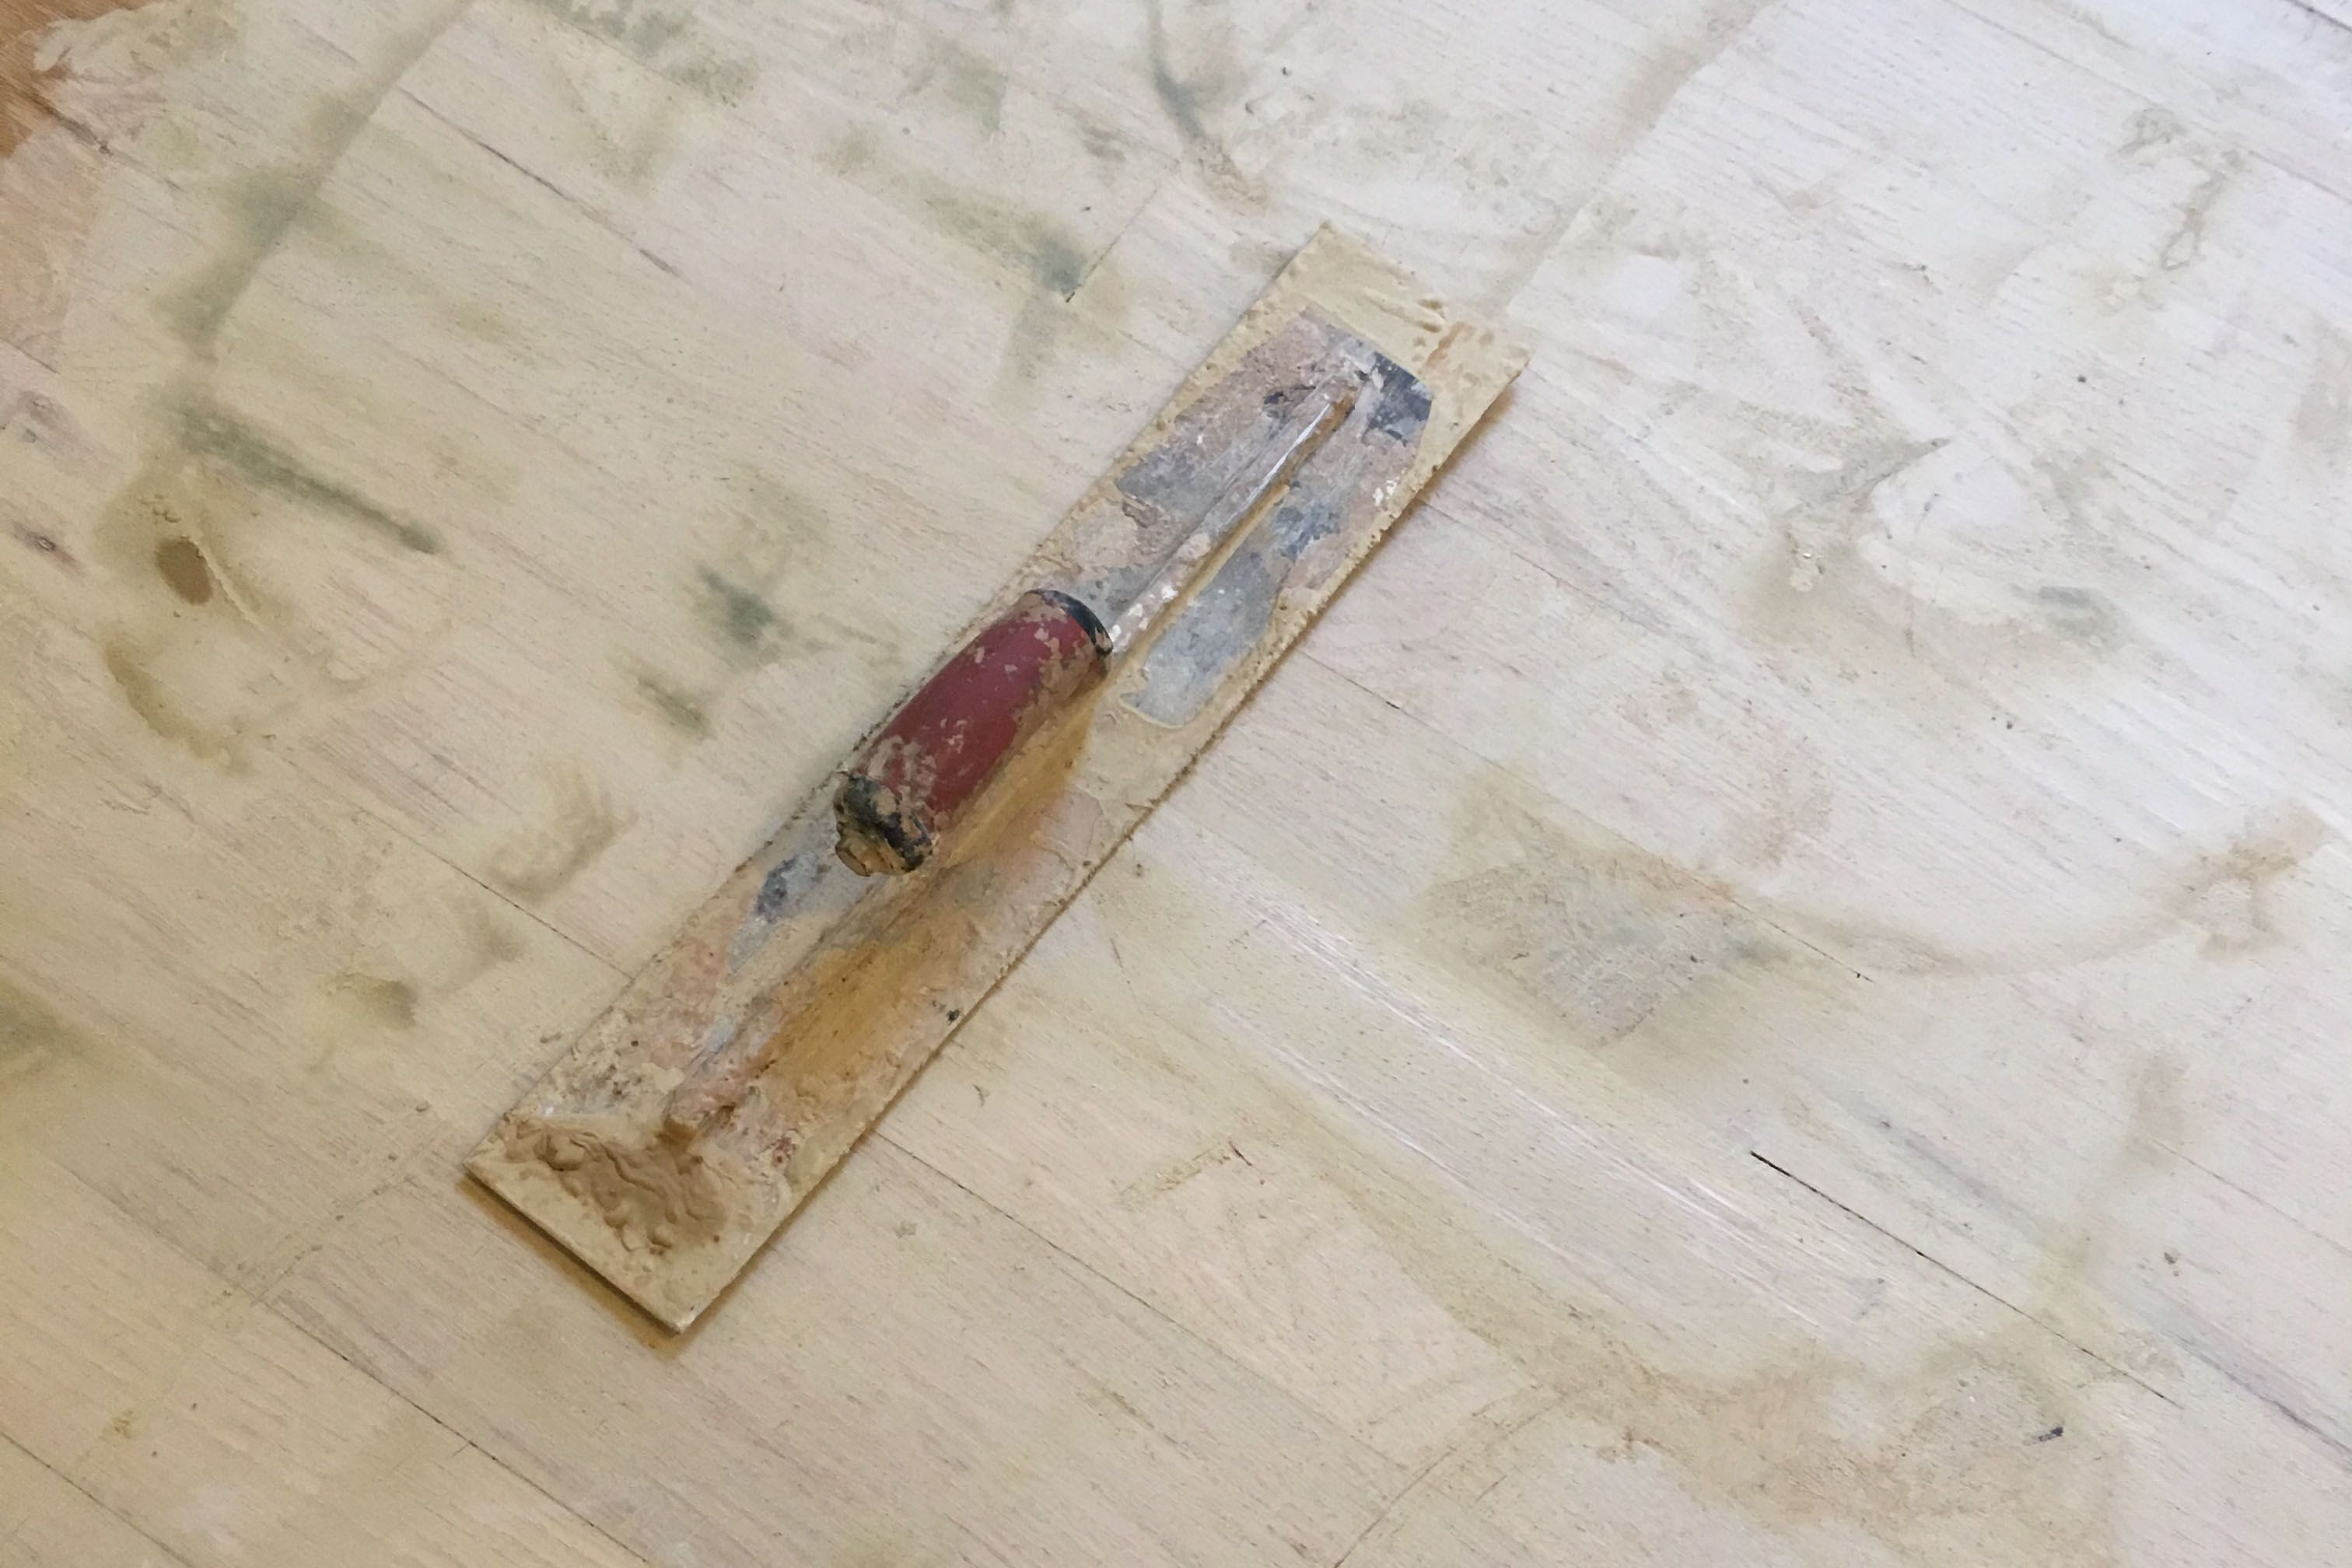 hardwood floor tools list of 7 things to know before you refinish hardwood floors regarding trough hardwood floor manhattan avenue via smallspaces about com 579138783df78c173490f8a5